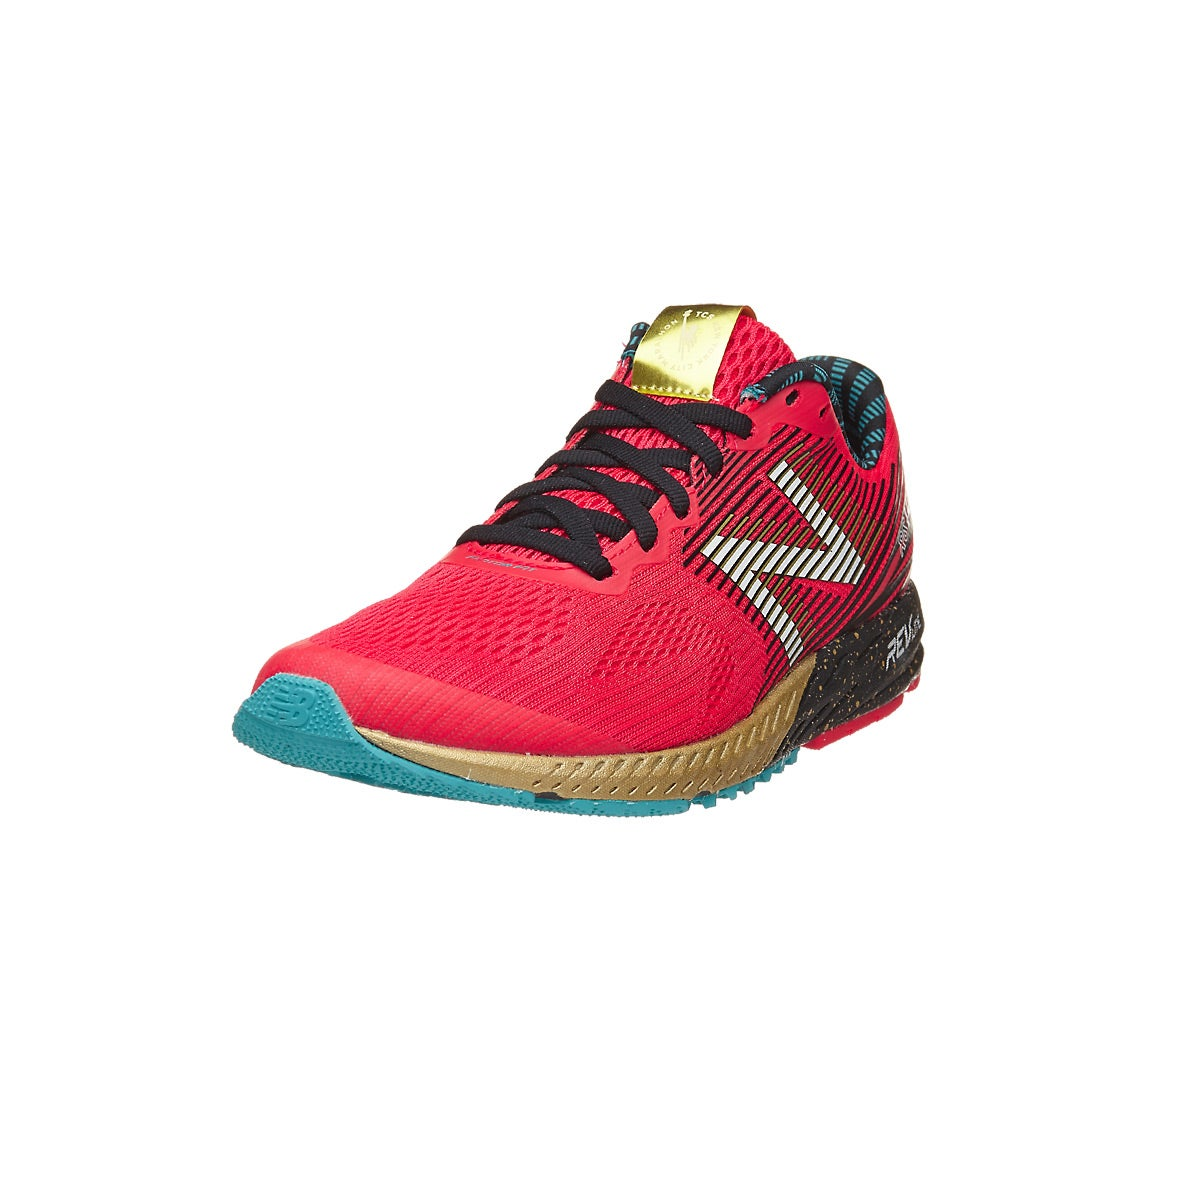 New Balance 1400 v5 Women's Shoes NYC 360° View | Running Warehouse